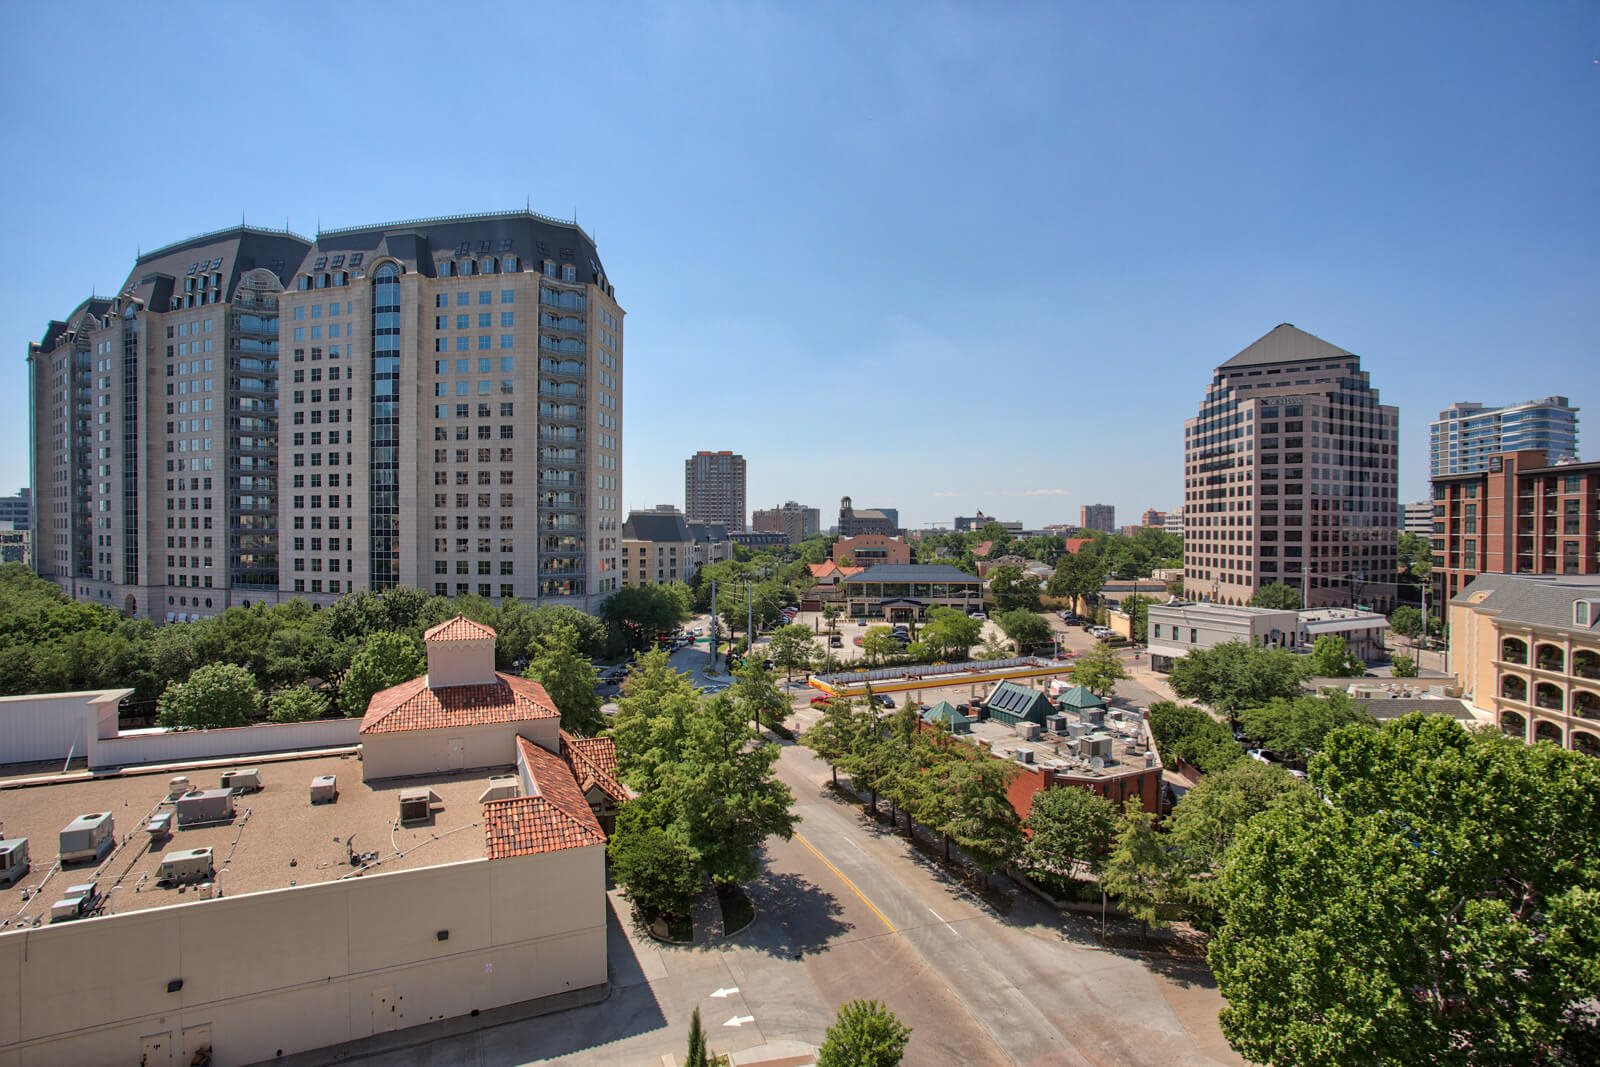 Enjoy City Views from Apartments and Amenity Spaces at The Jordan by Windsor, 2355 Thomas Ave, TX